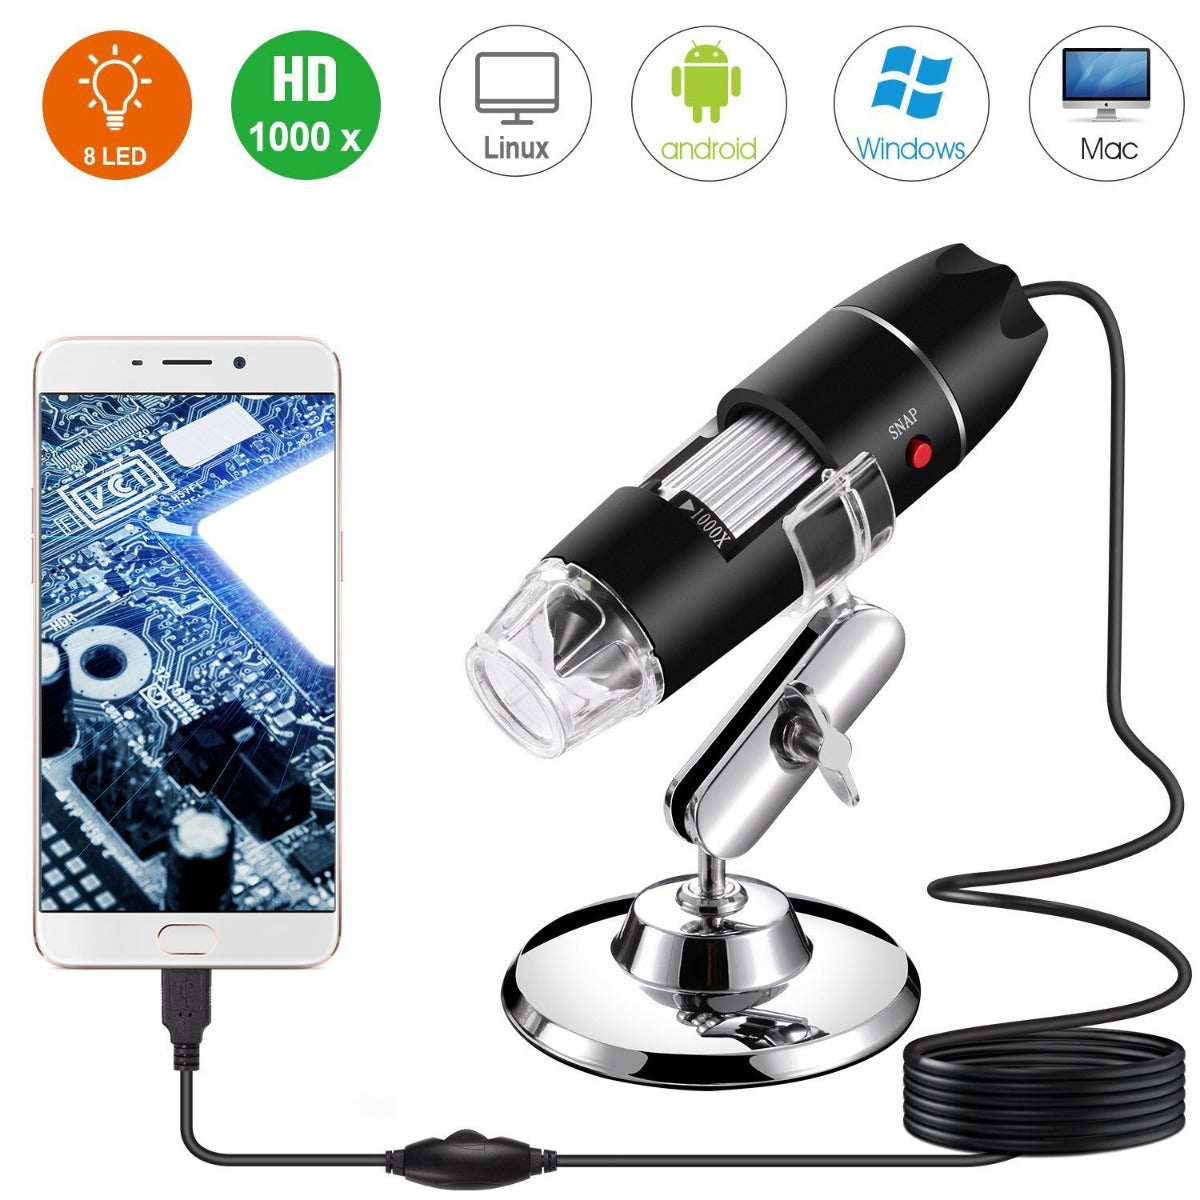 1000x USB Digital Microscope (80% OFF - LIMITED TIME)